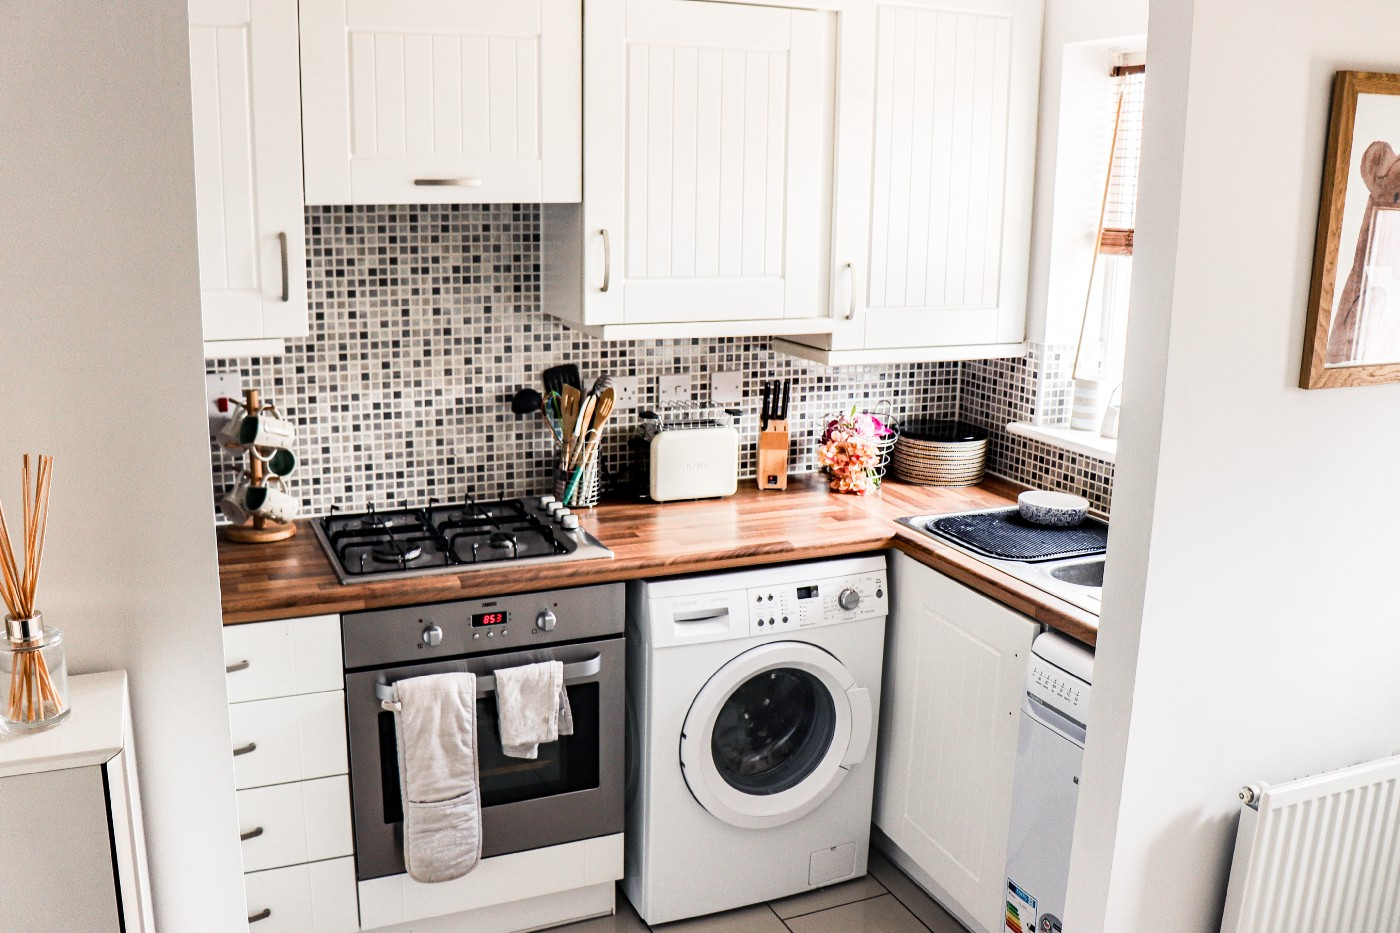 A kitchen, with an oven, washing machine, and cupboards in view.